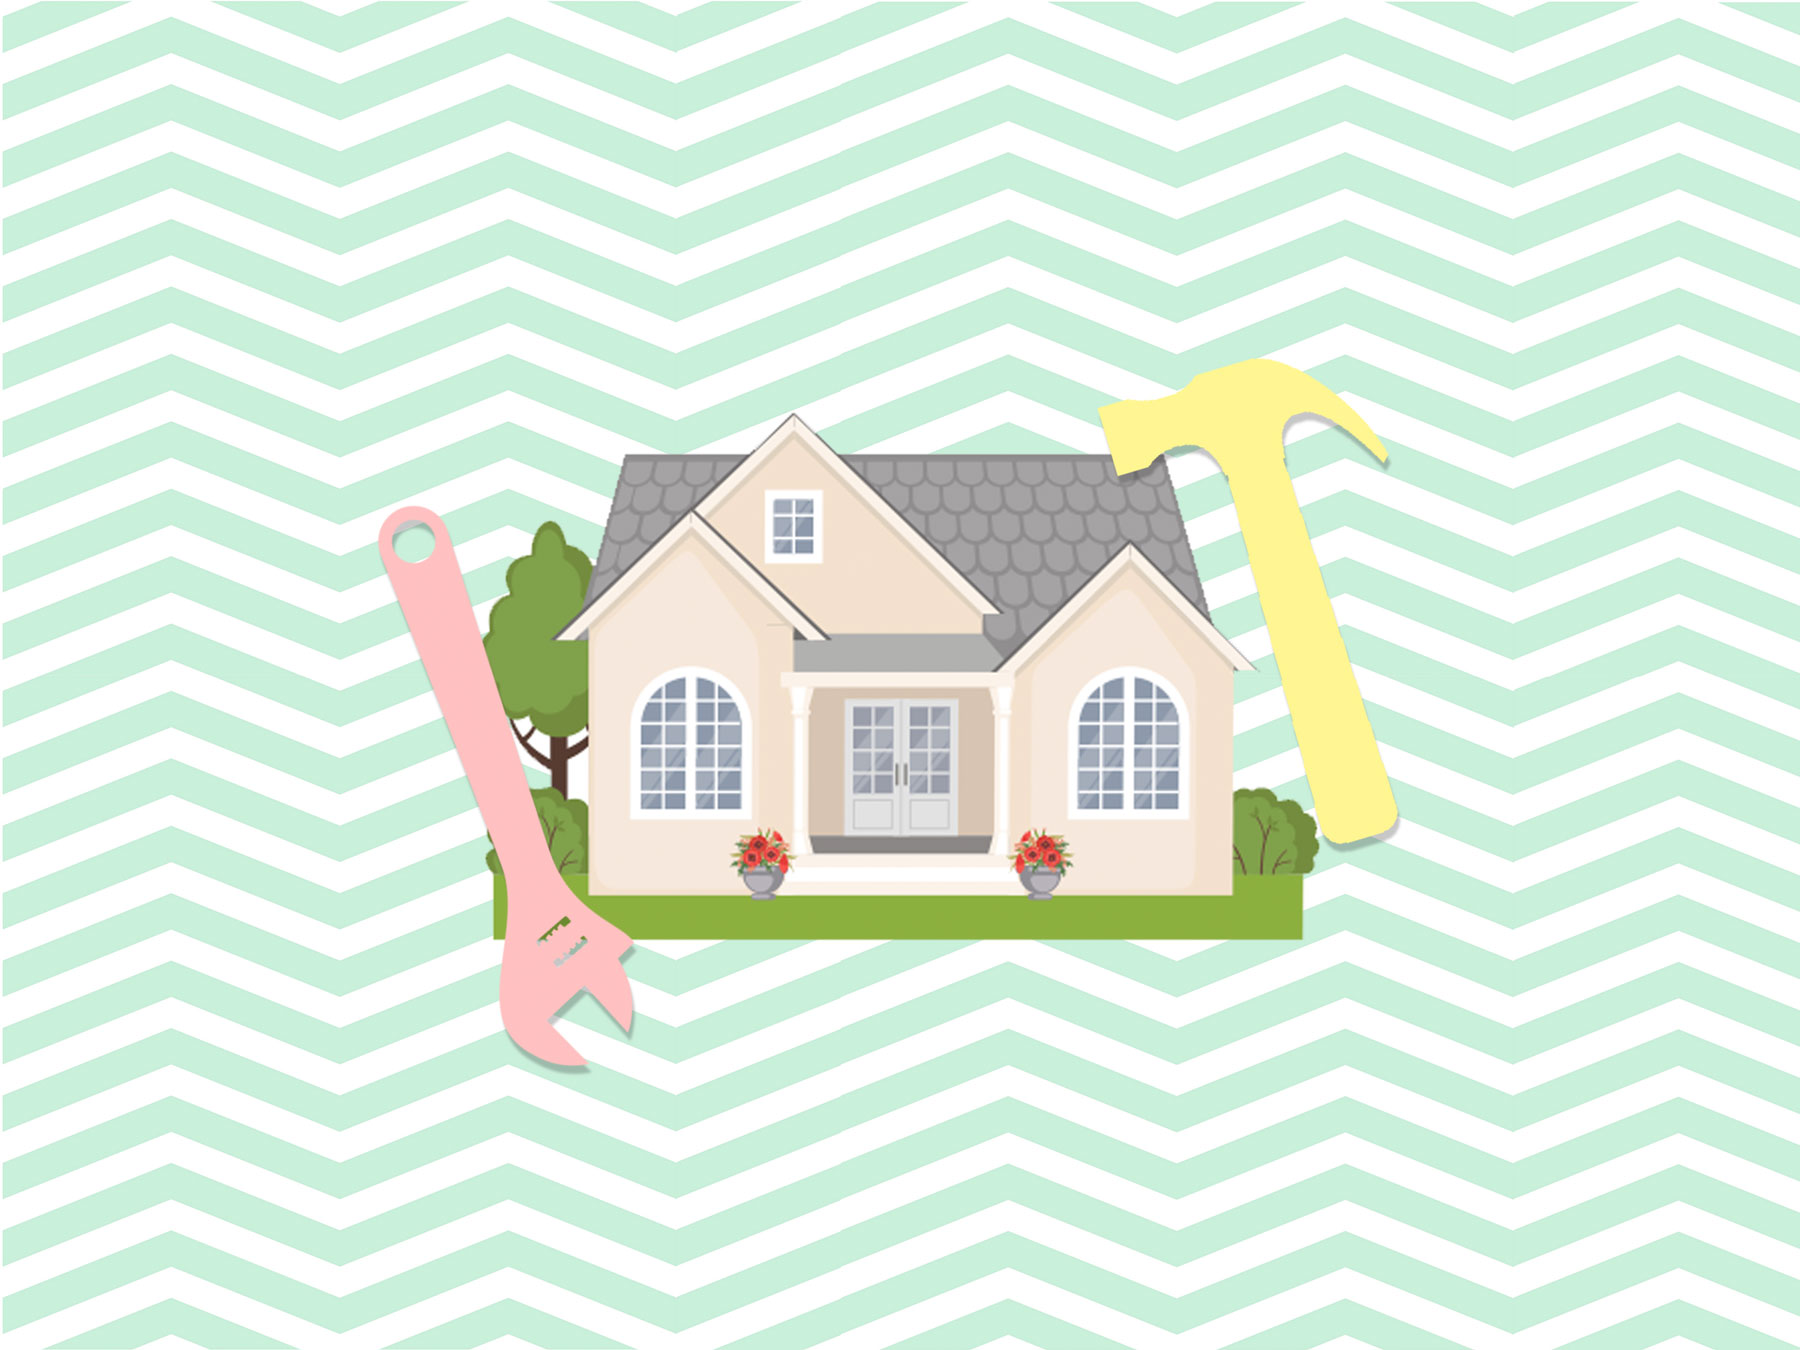 Should you renovate at once or in bits and pieces? - house update